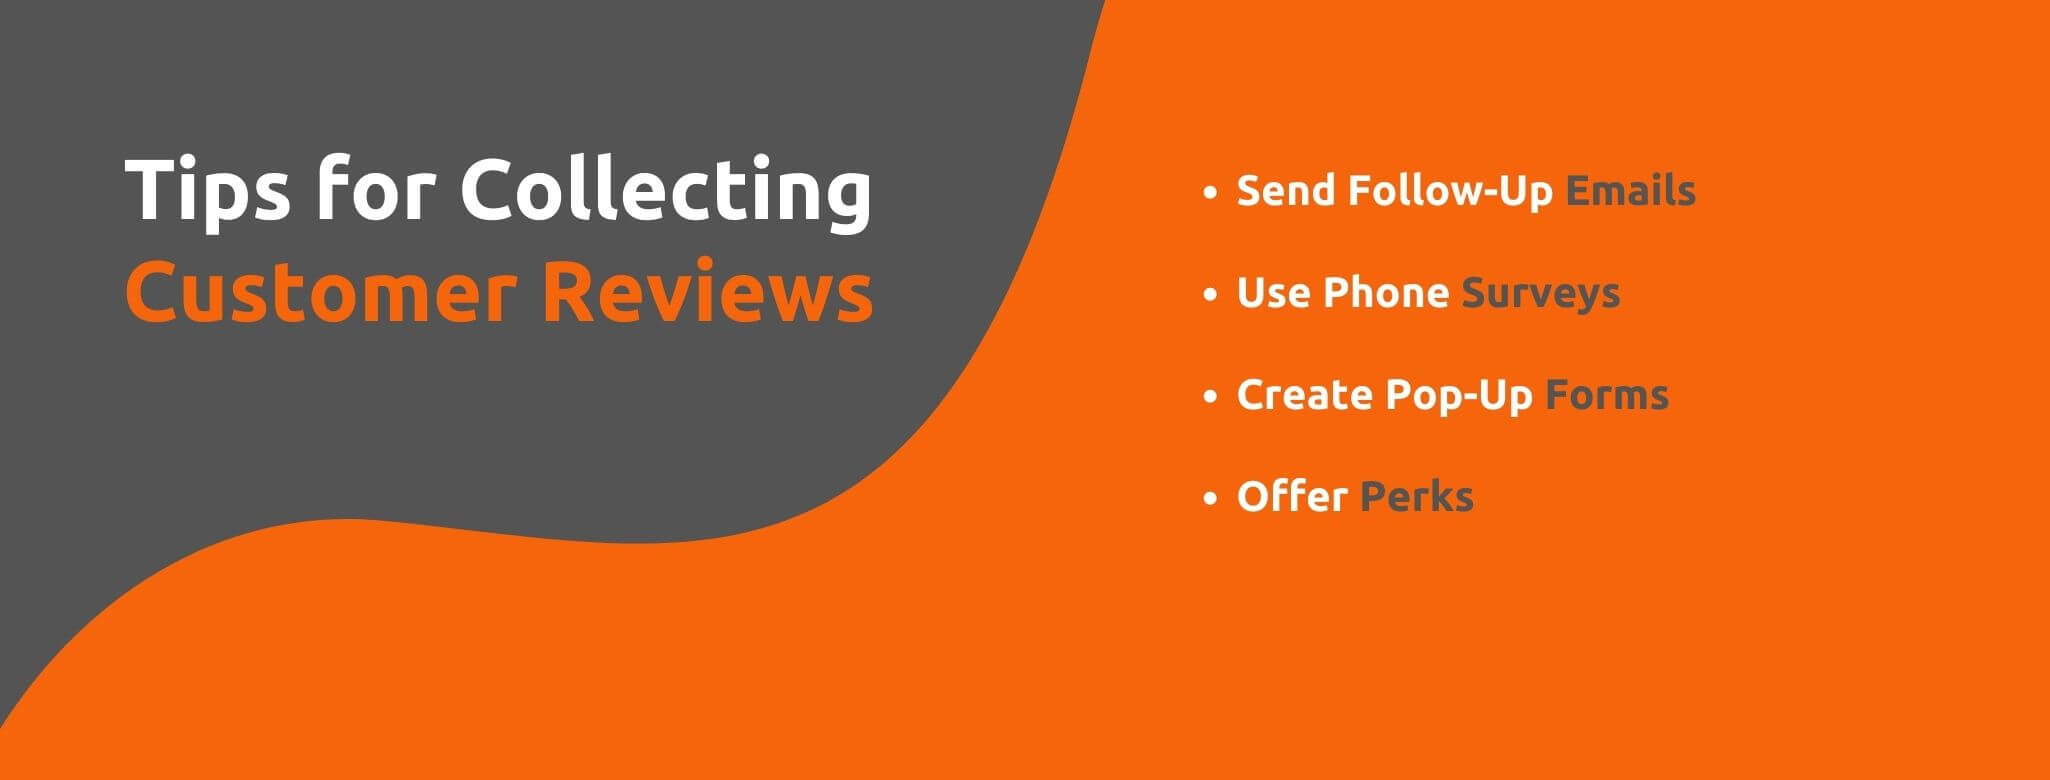 Tips for Collecting Customer Reviews - How to Get Great Customer Reviews - Replyco Helpdesk Software for eCommerce